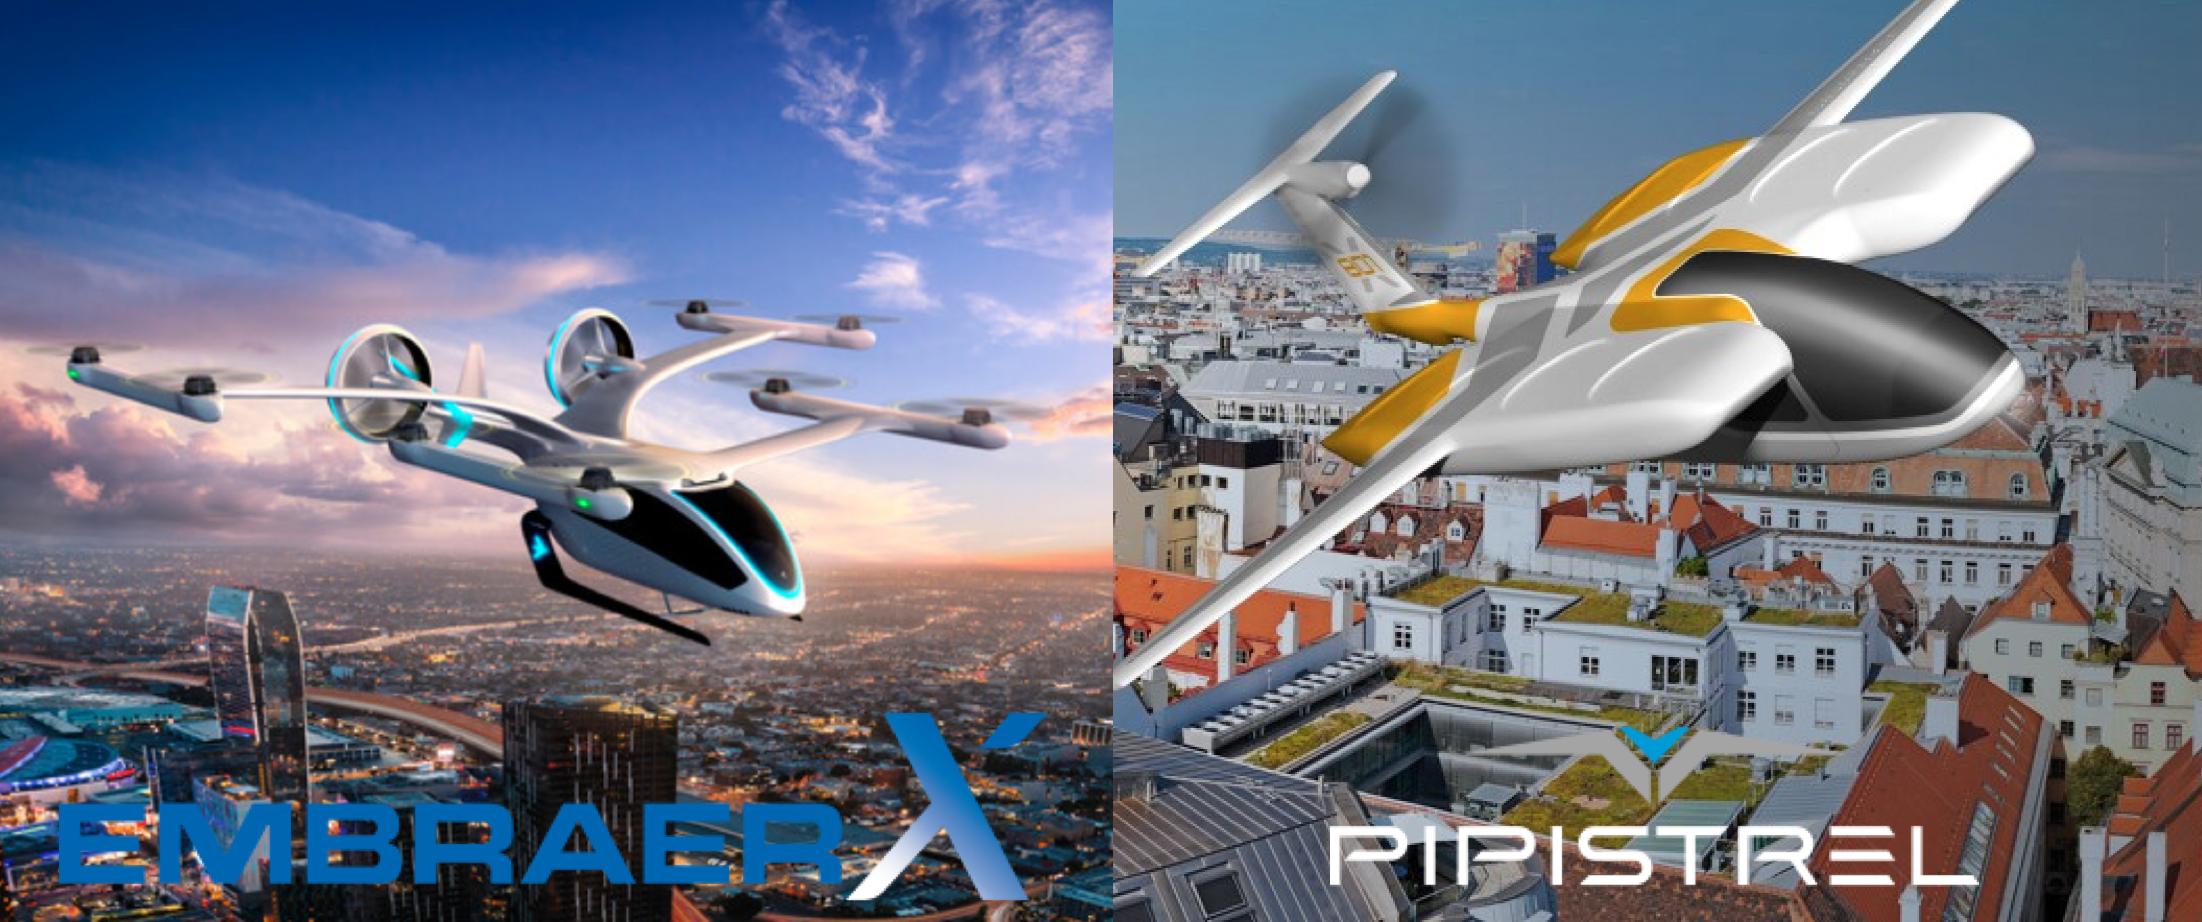 Uber Air EmbraerX Pipisterel